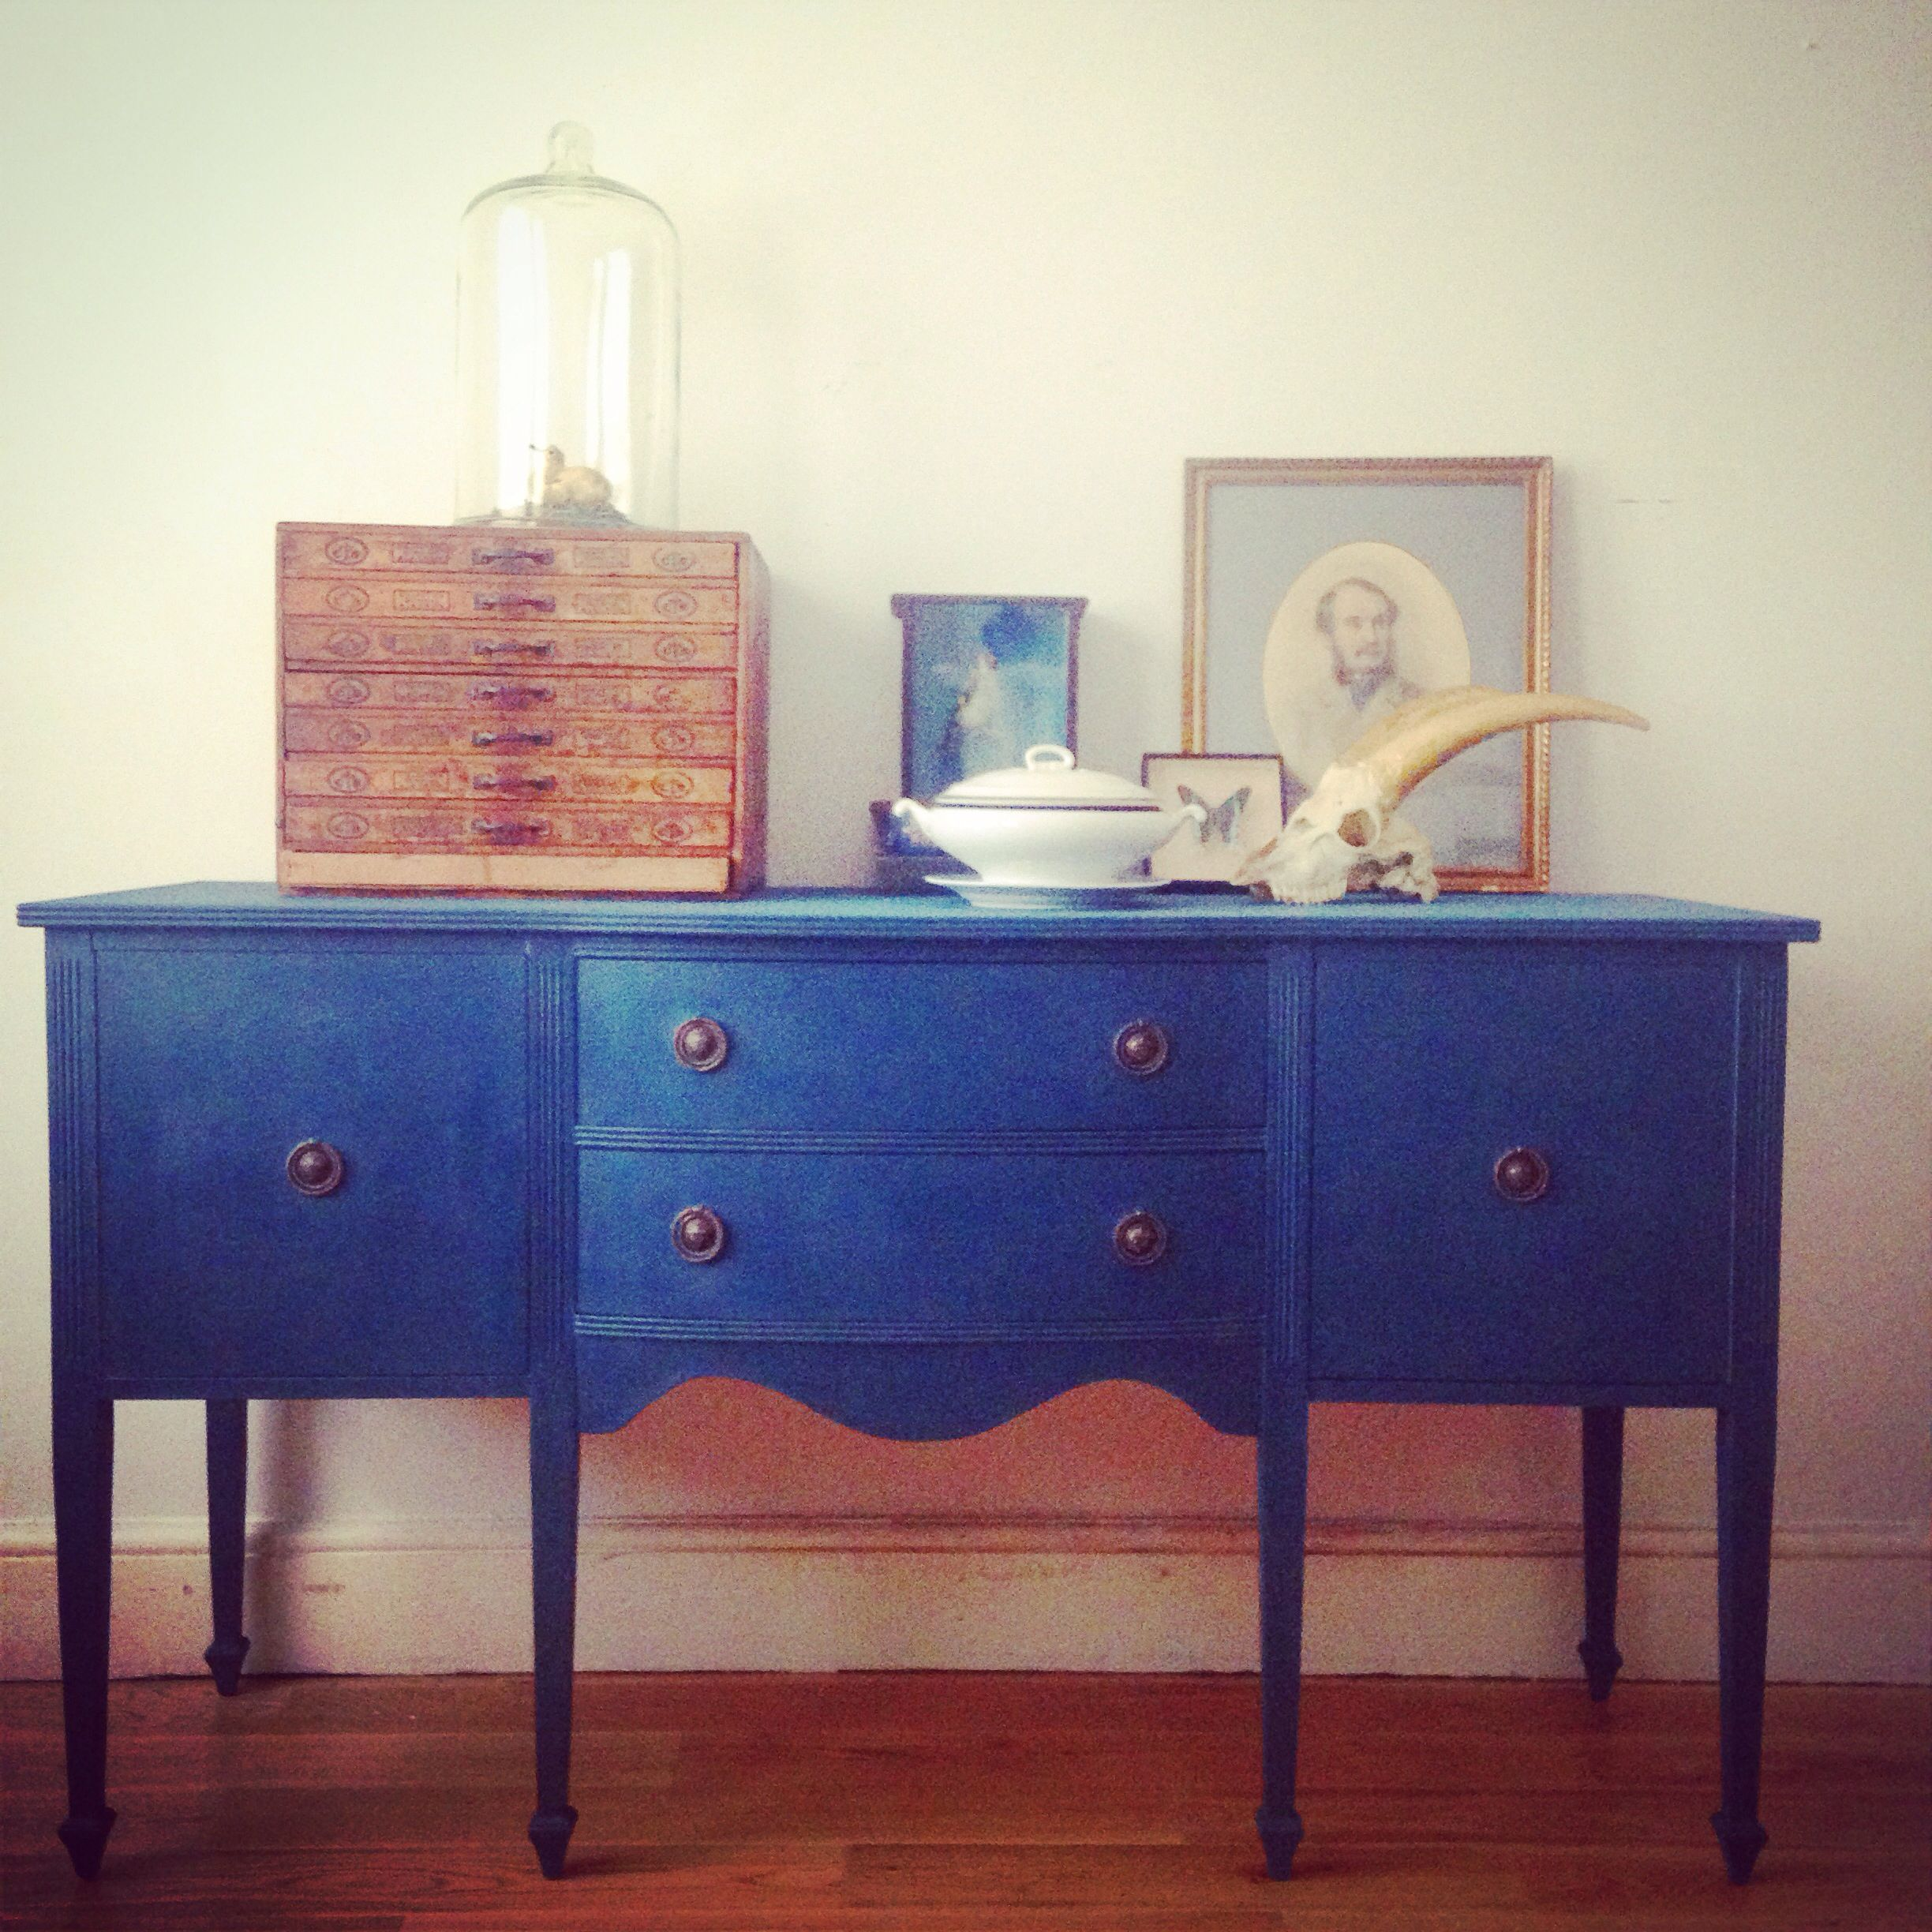 Georgian style sideboard transformed with Annie Sloan Chalk Paint TM in Aubusson Blue finished with clear wax. From Find of Temple Bar Dublin.